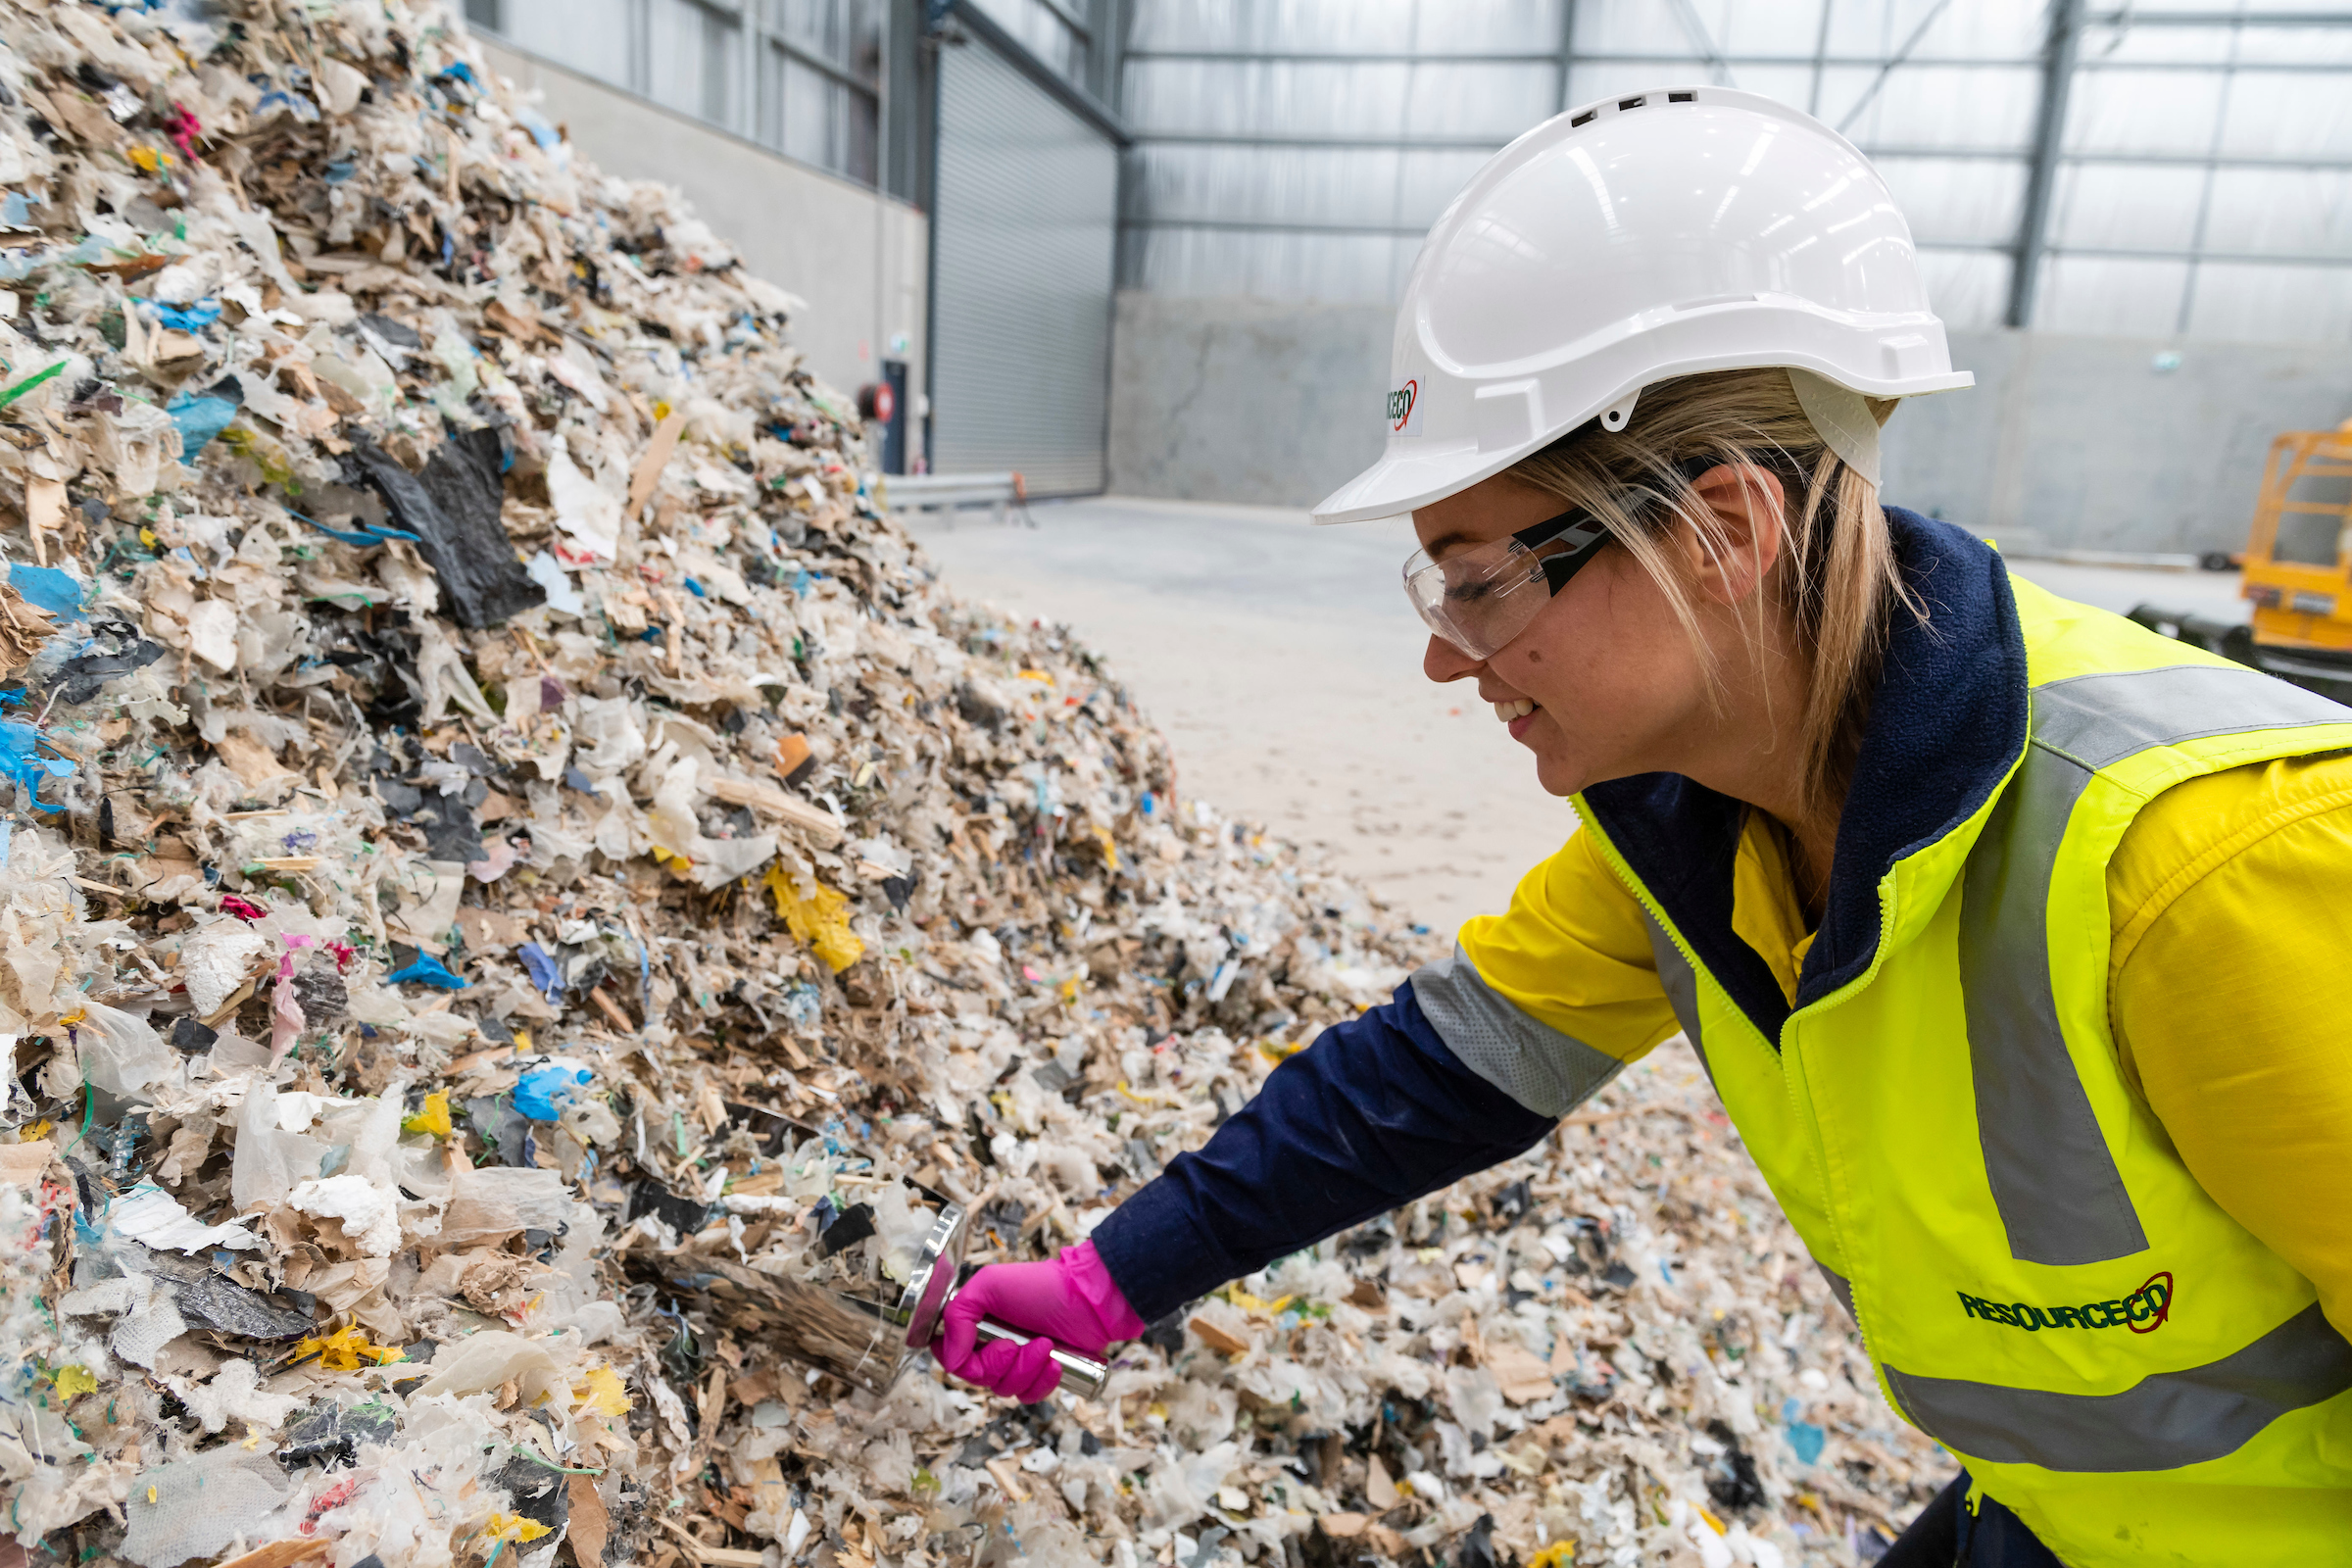 ResourceCo: Ready to support government's green initiatives